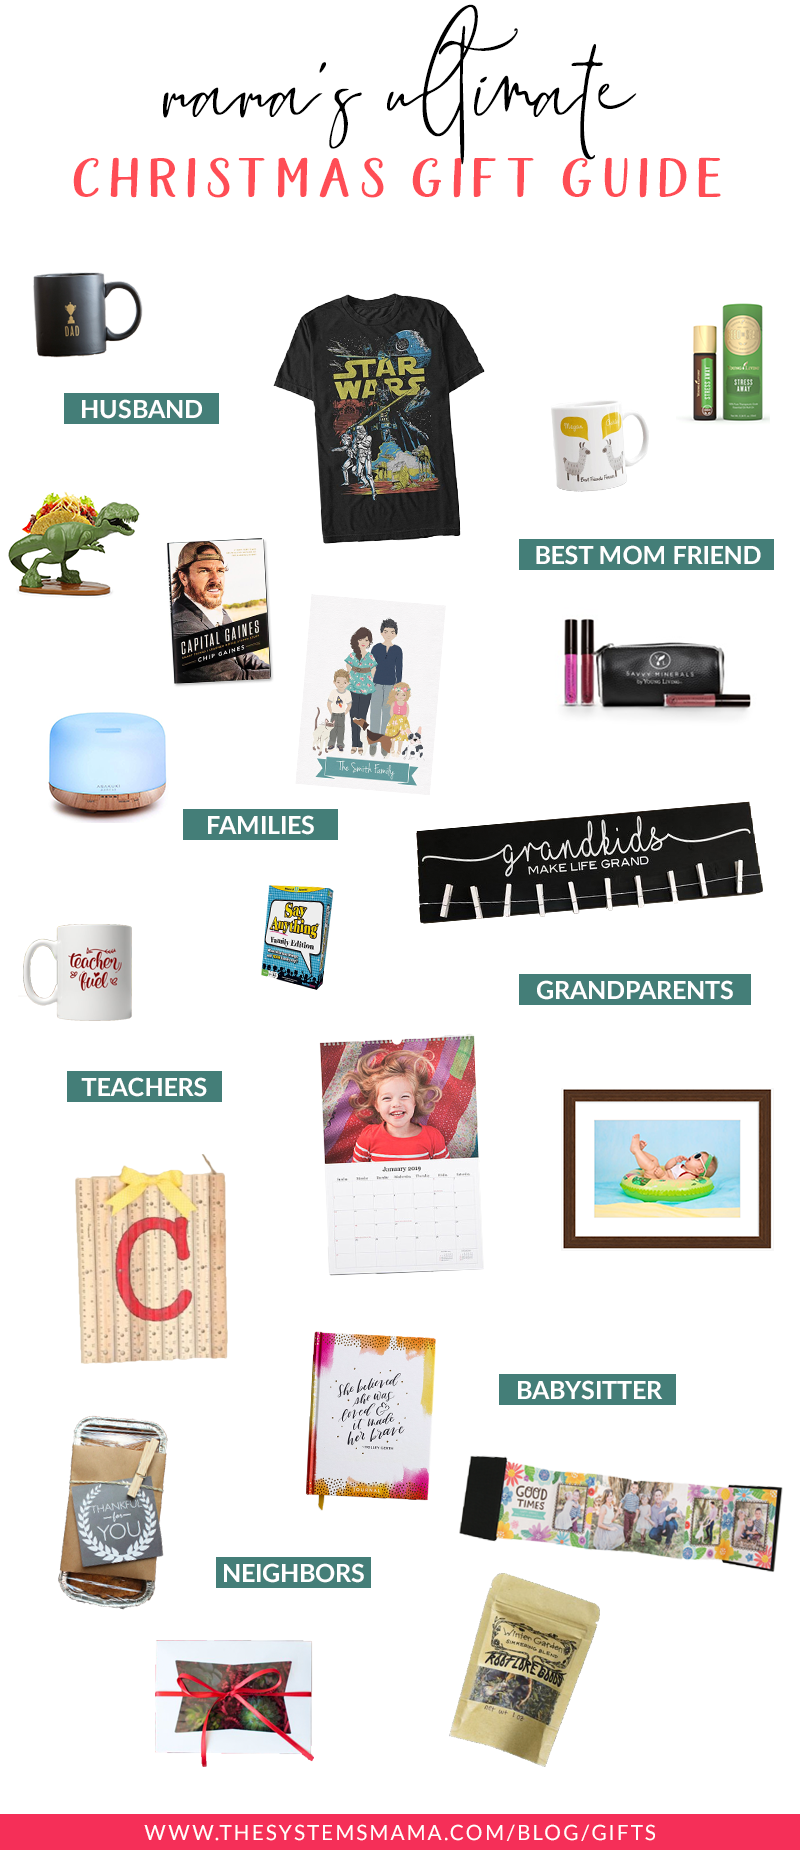 Christmas gift ideas for your husband, best mom friend, family friends, teachers, babysitter, and neighbors! #giftguide #christmas #giftideas